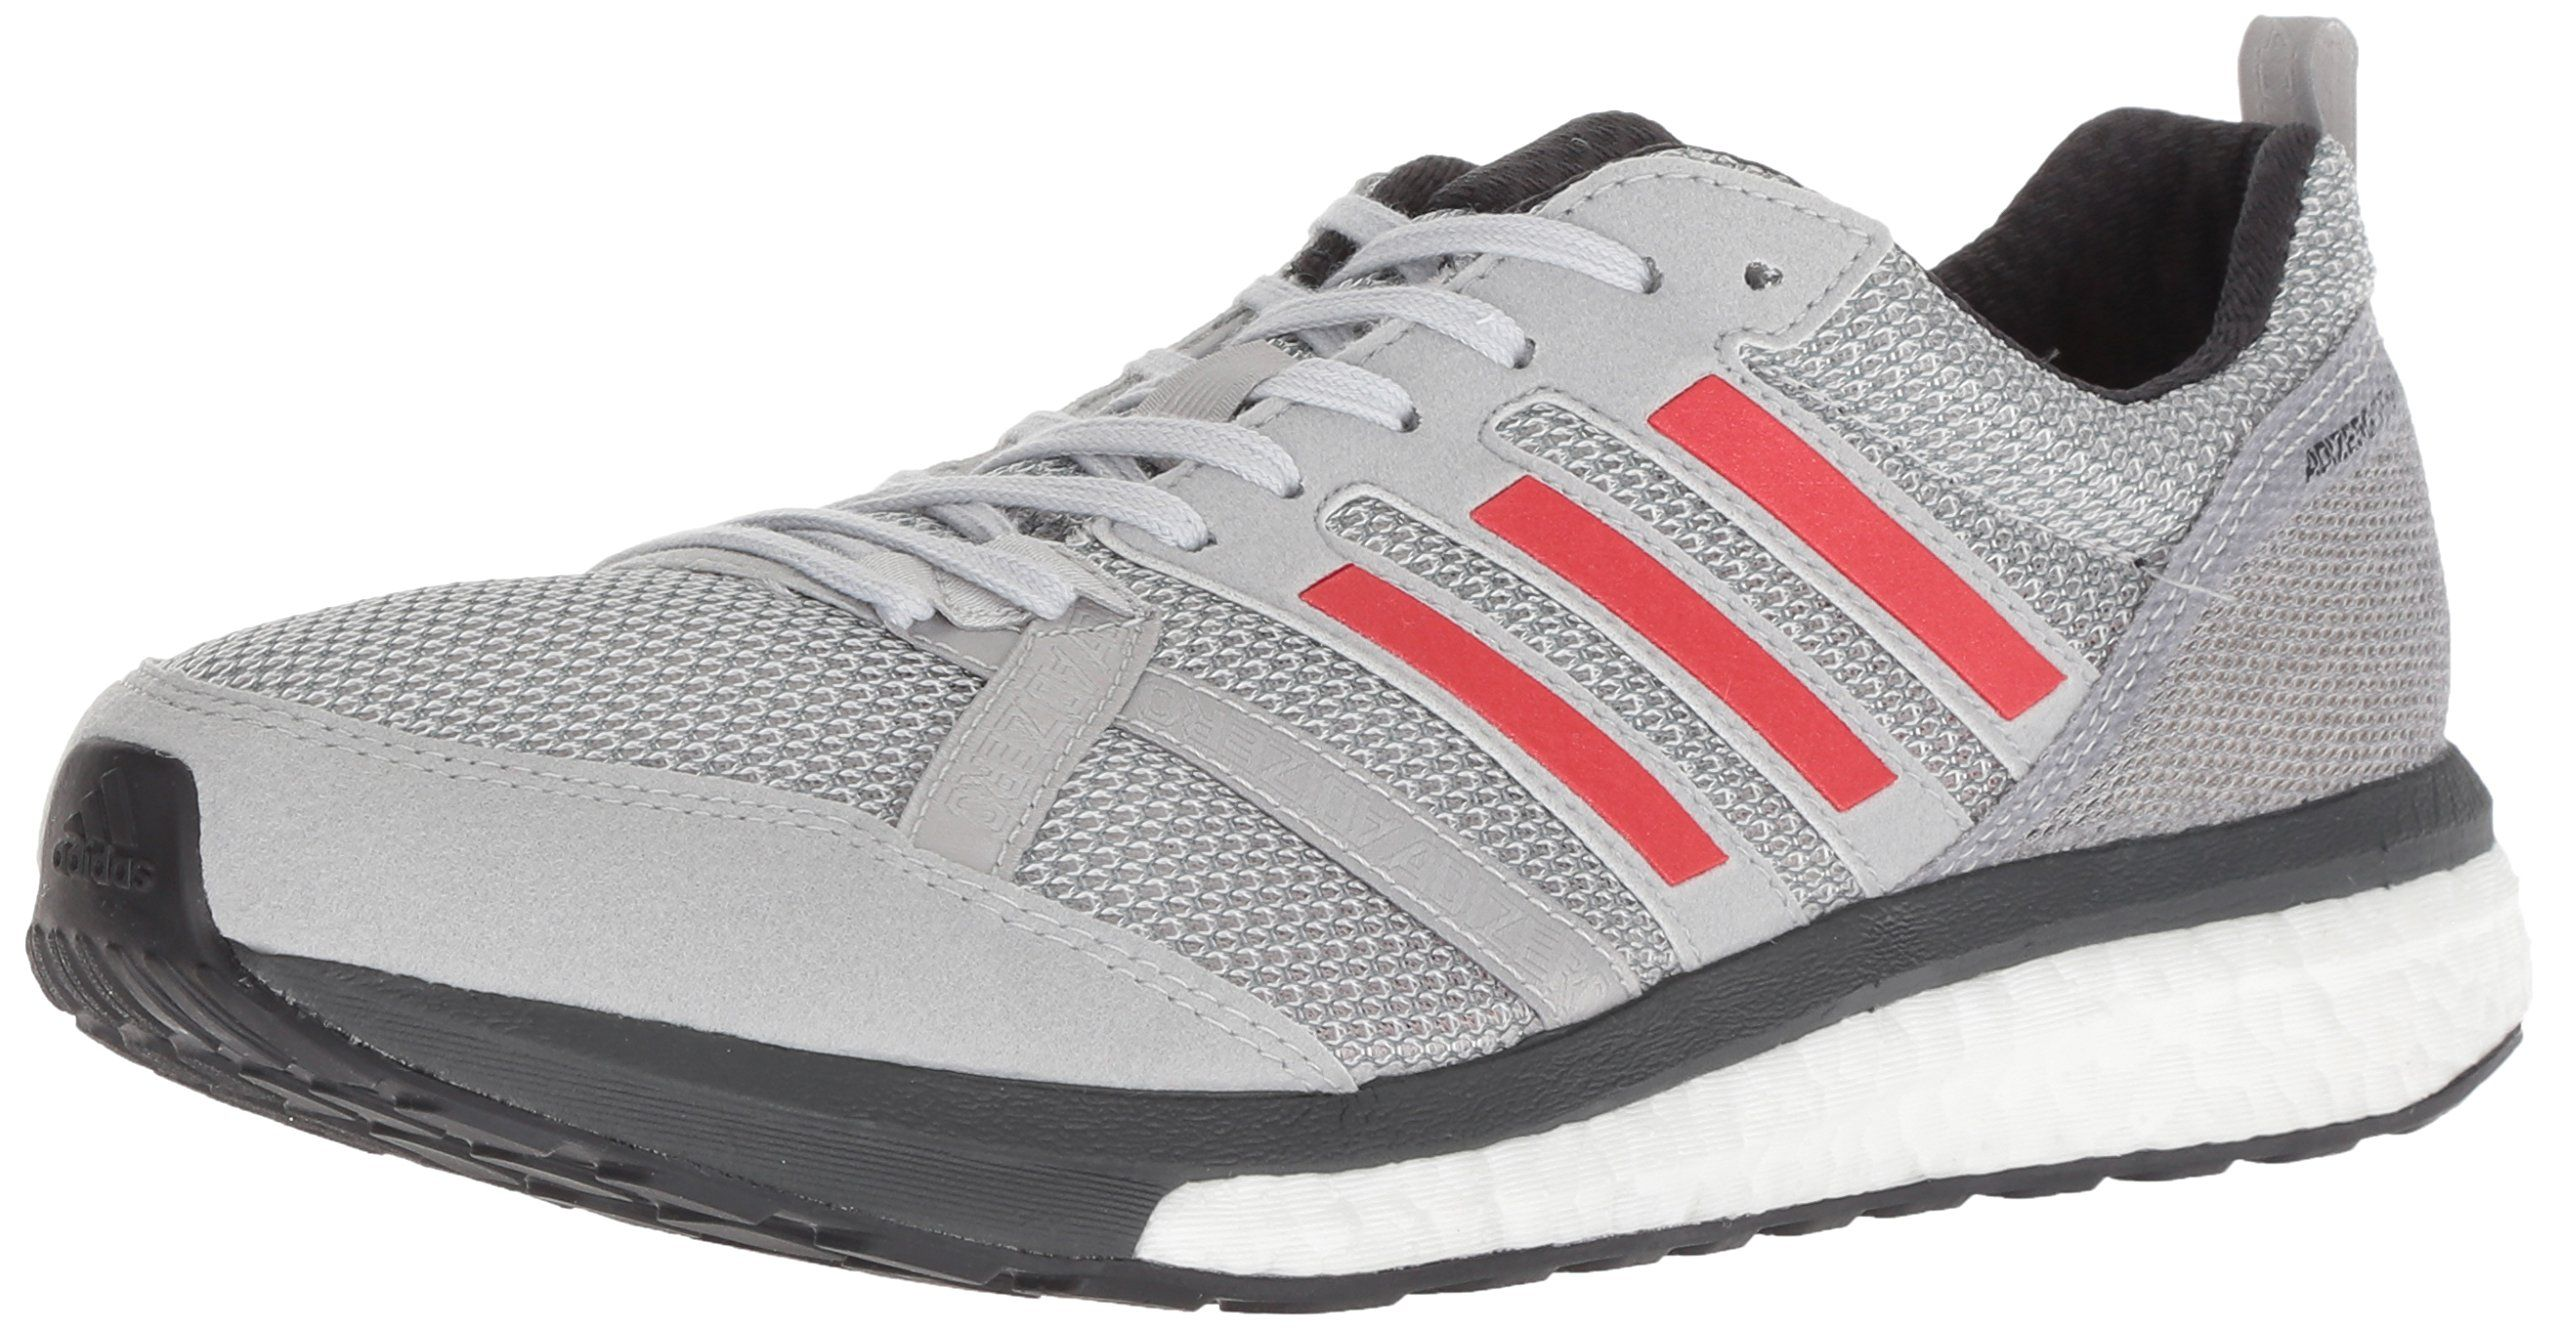 timeless design 153ec 59d91 adidas Mens Adizero Tempo 9 Running Shoe Greyhires redCarbon 10.5 M US --  Continue to the product at the image link-affiliate link.  adidasmenrunningshoes